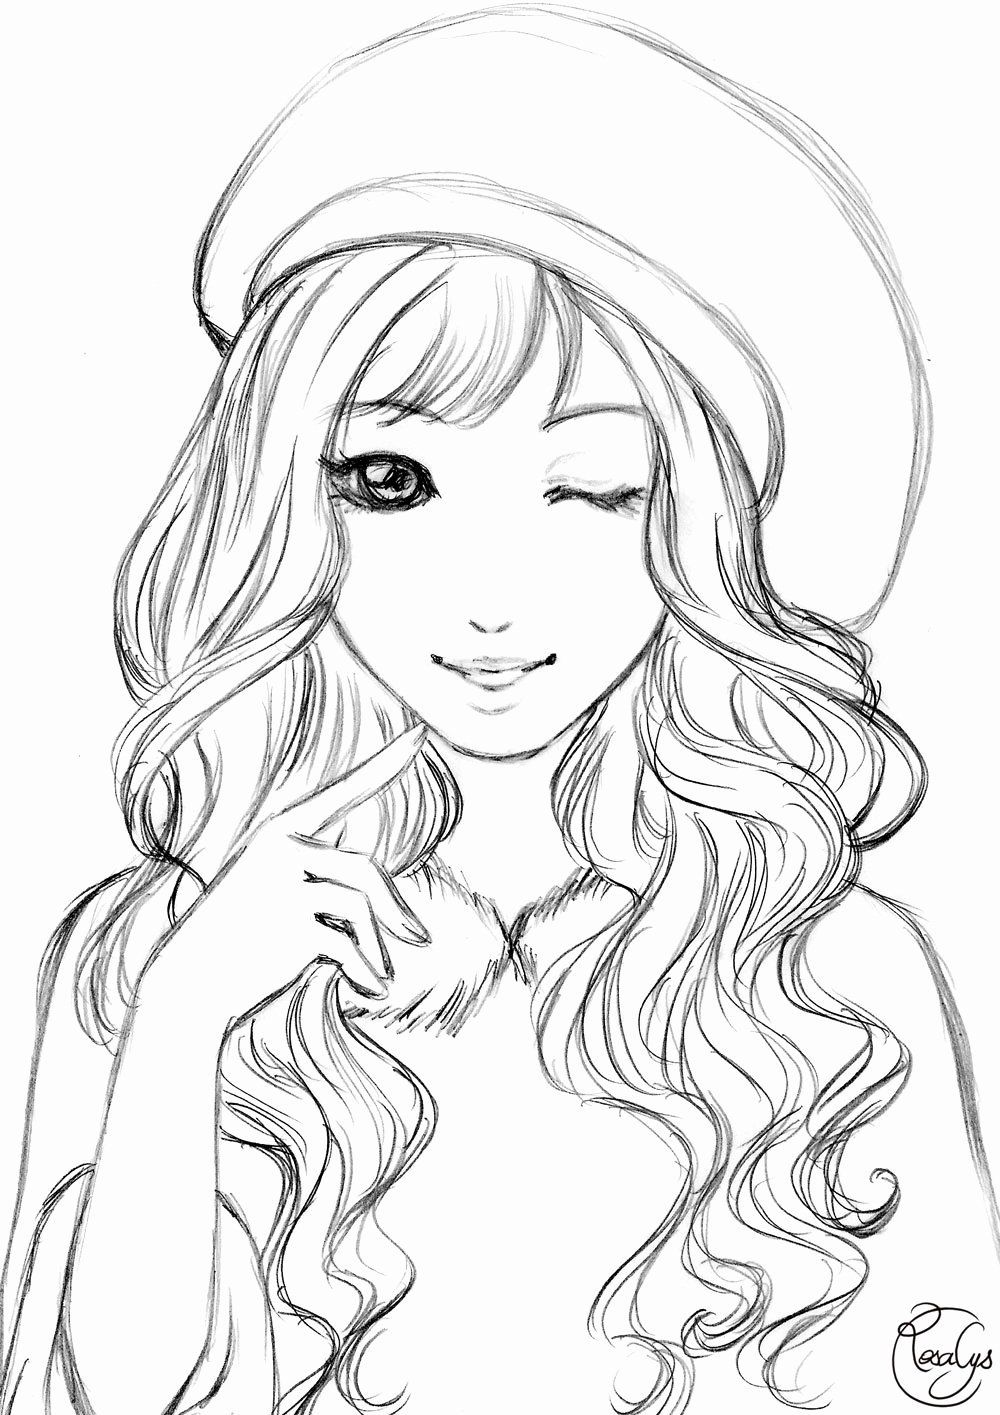 Coloring Books For Teenage Girls Luxury Linearts Rosalys Artist Girly Drawings Girl Drawing Sketches Disney Art Drawings